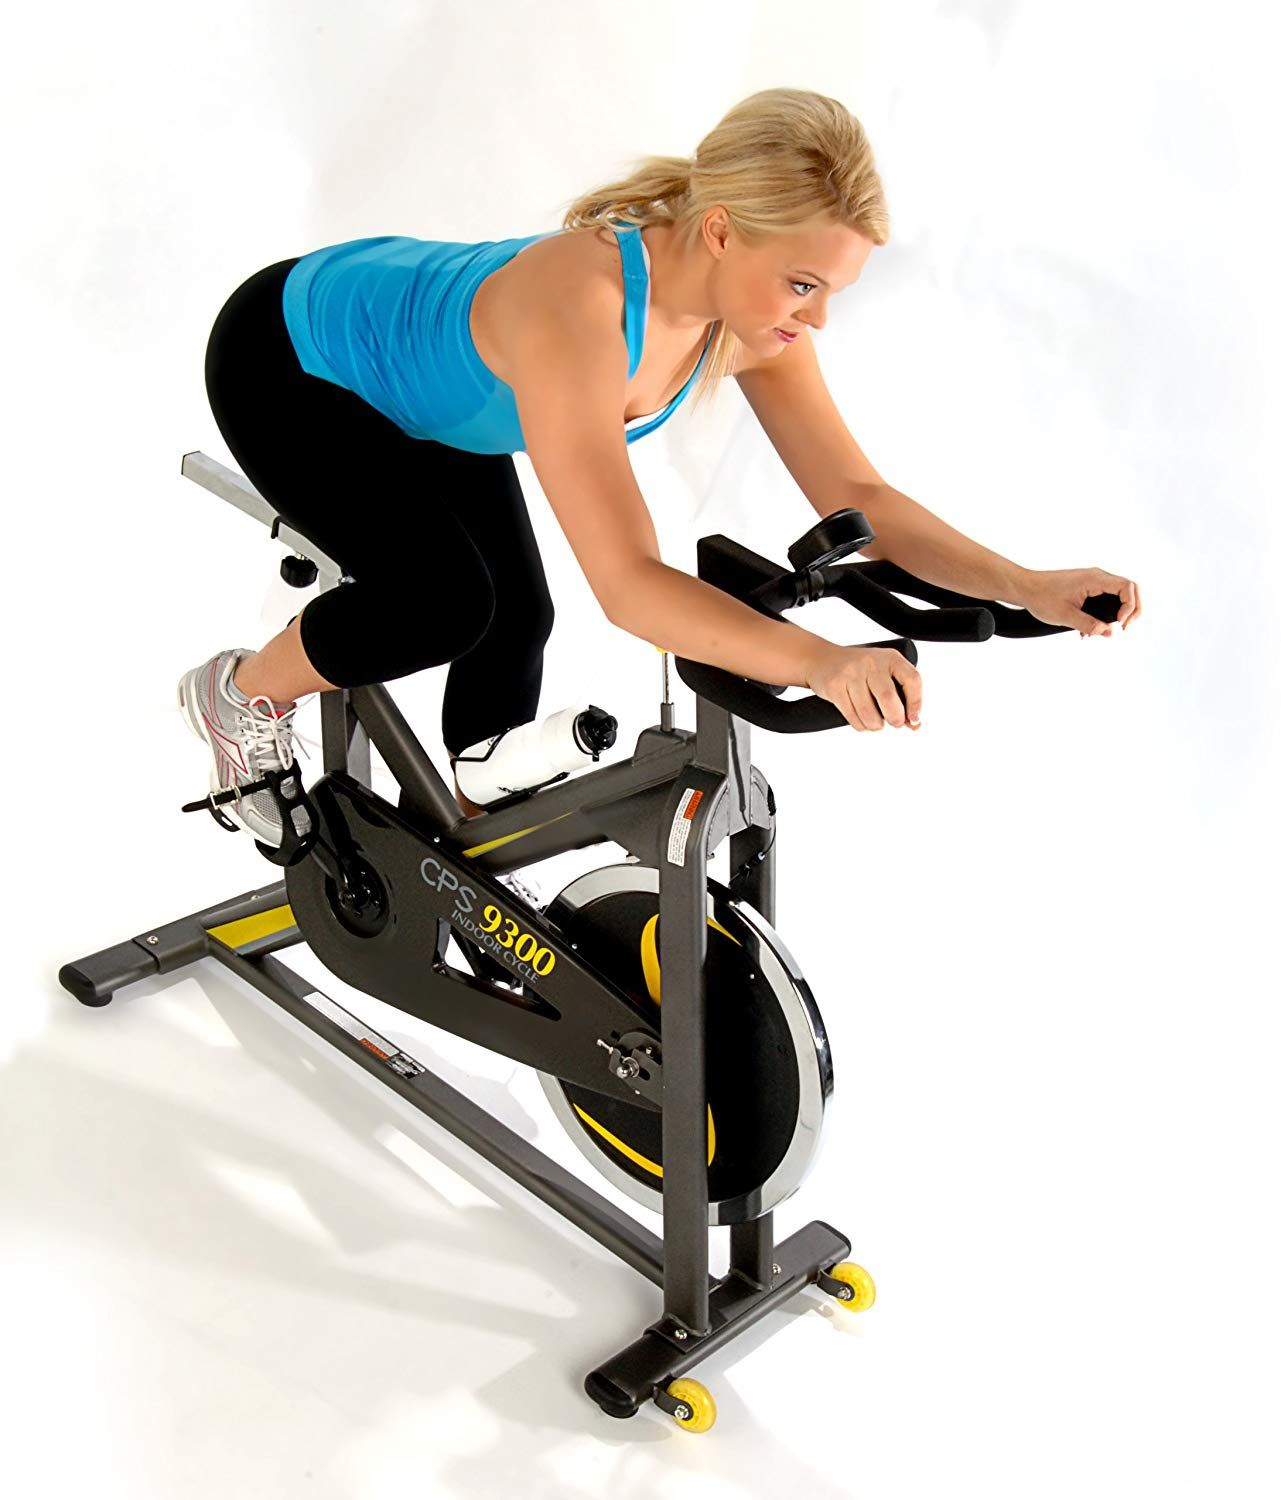 There Is An Immense Scope Of Indoor Bicycles Accessible And It Can Feel A Bit Overwhelming When Looking Best Exercise Bike Exercise Bike Reviews Biking Workout